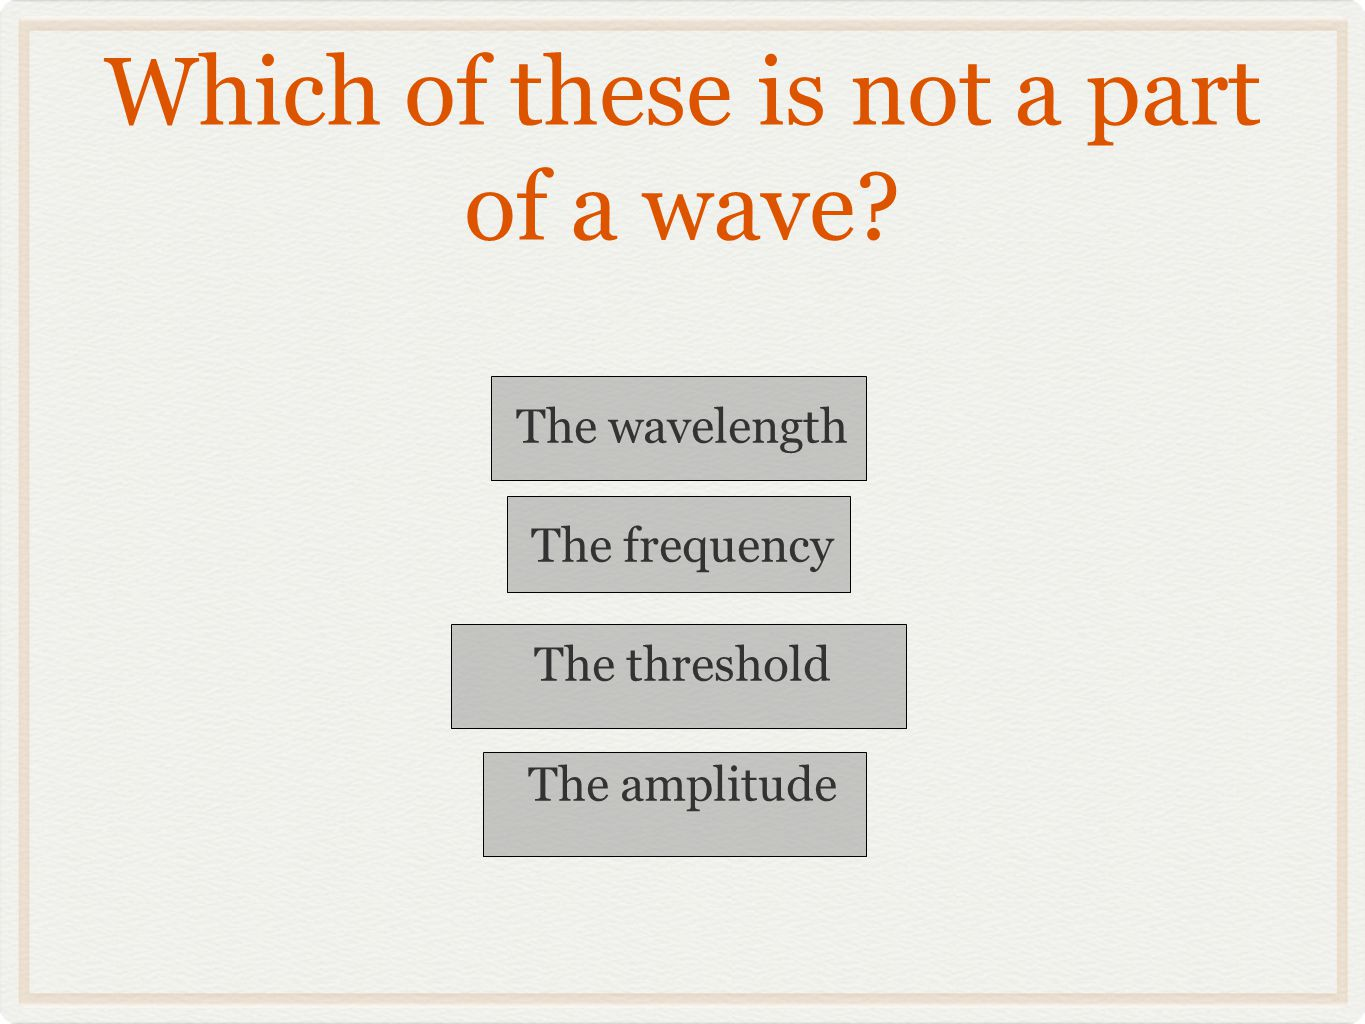 Which of these is not a part of a wave